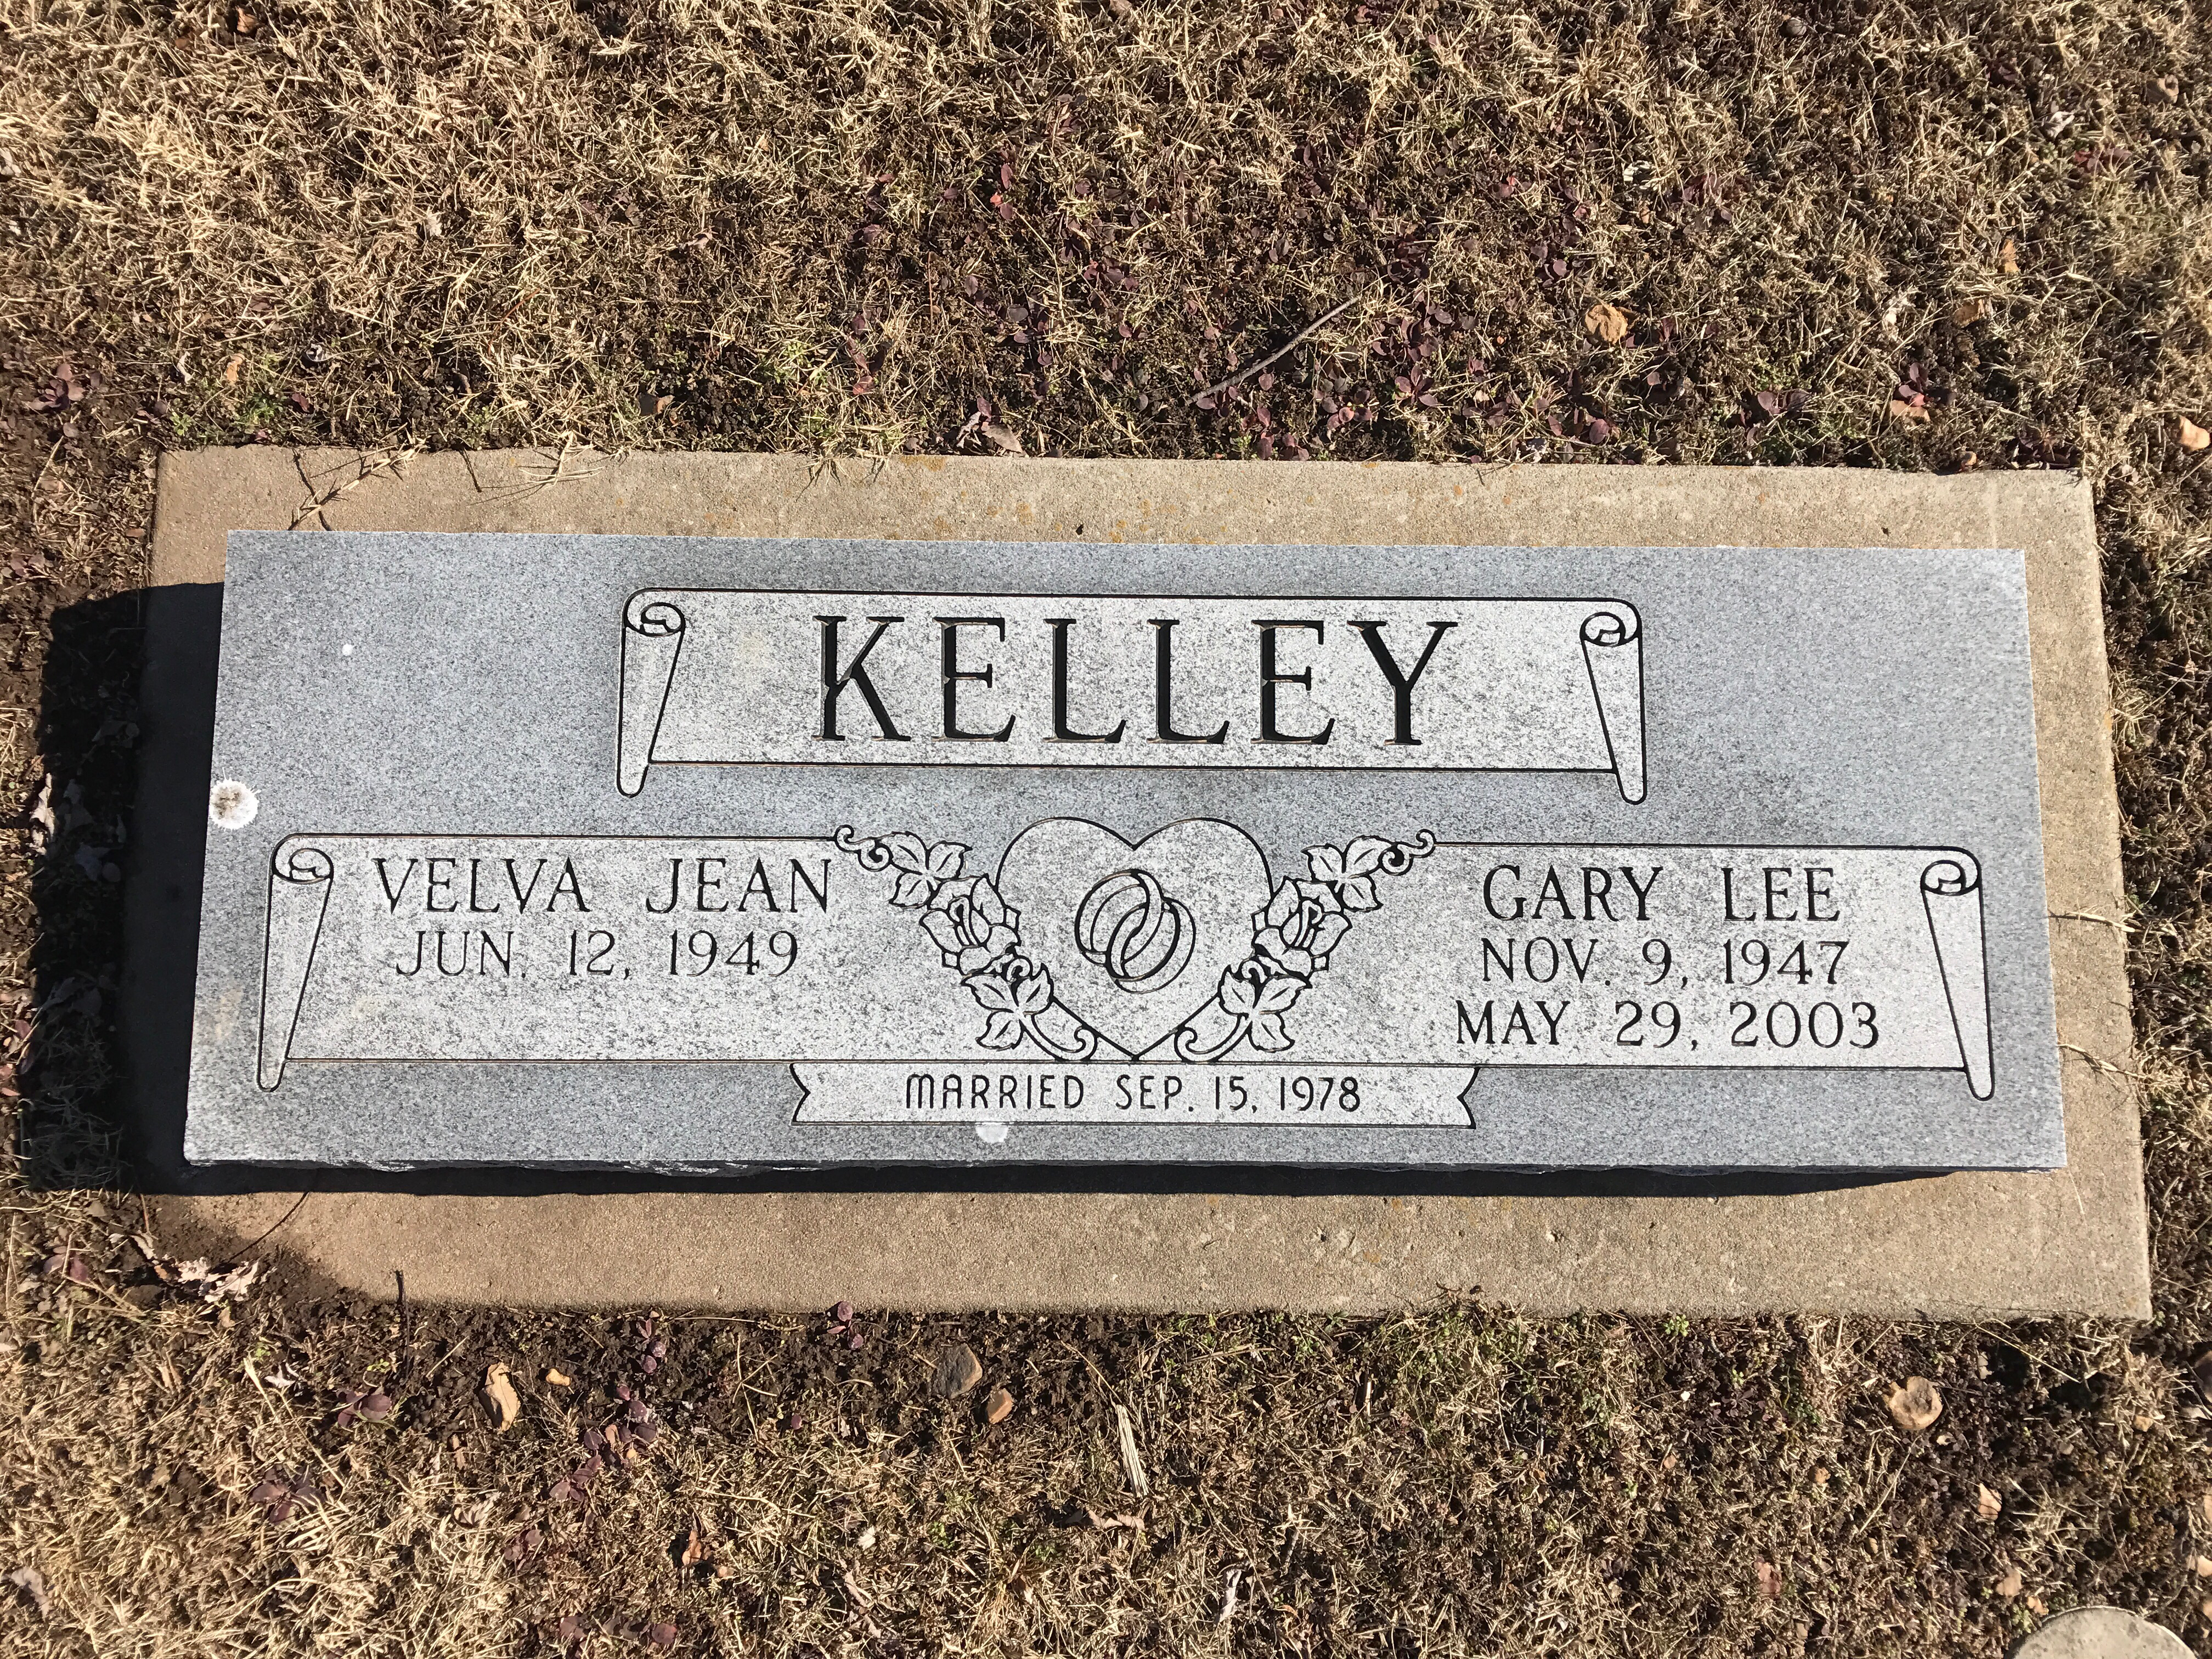 Gary Lee Kelley